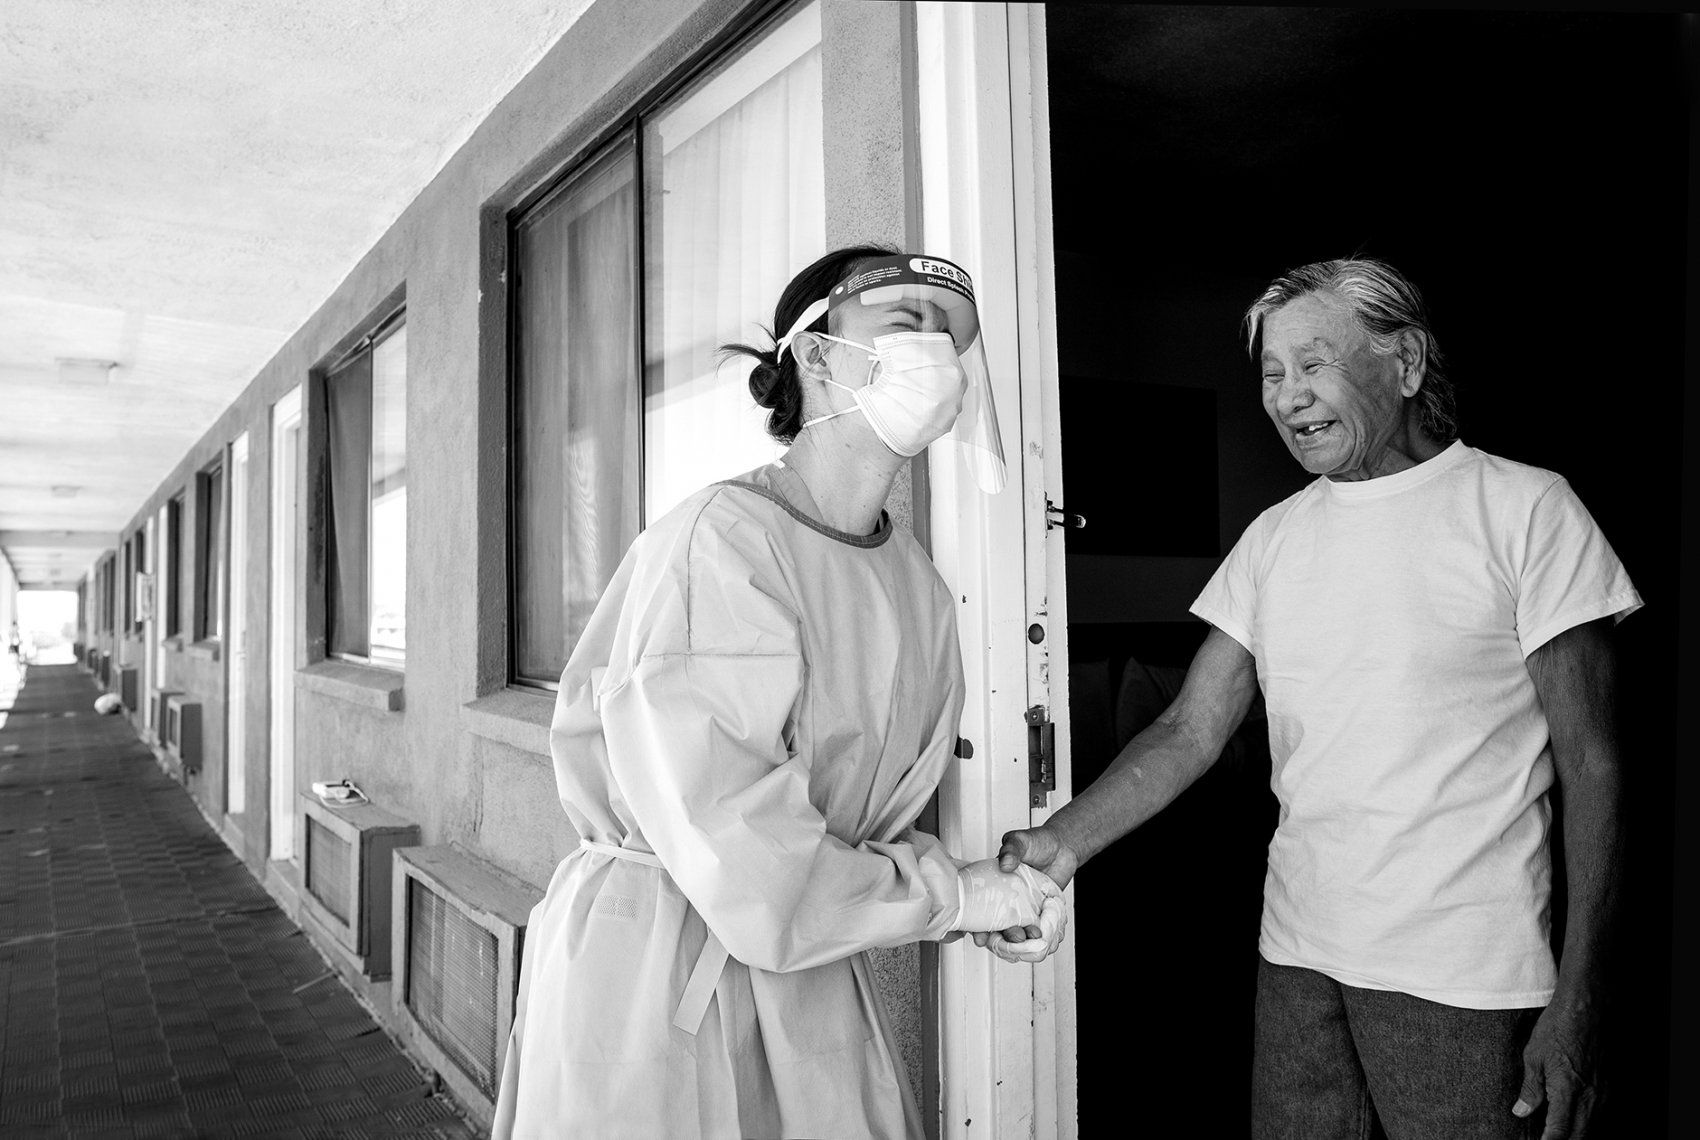 medical worker talks with a man in a motel doorway